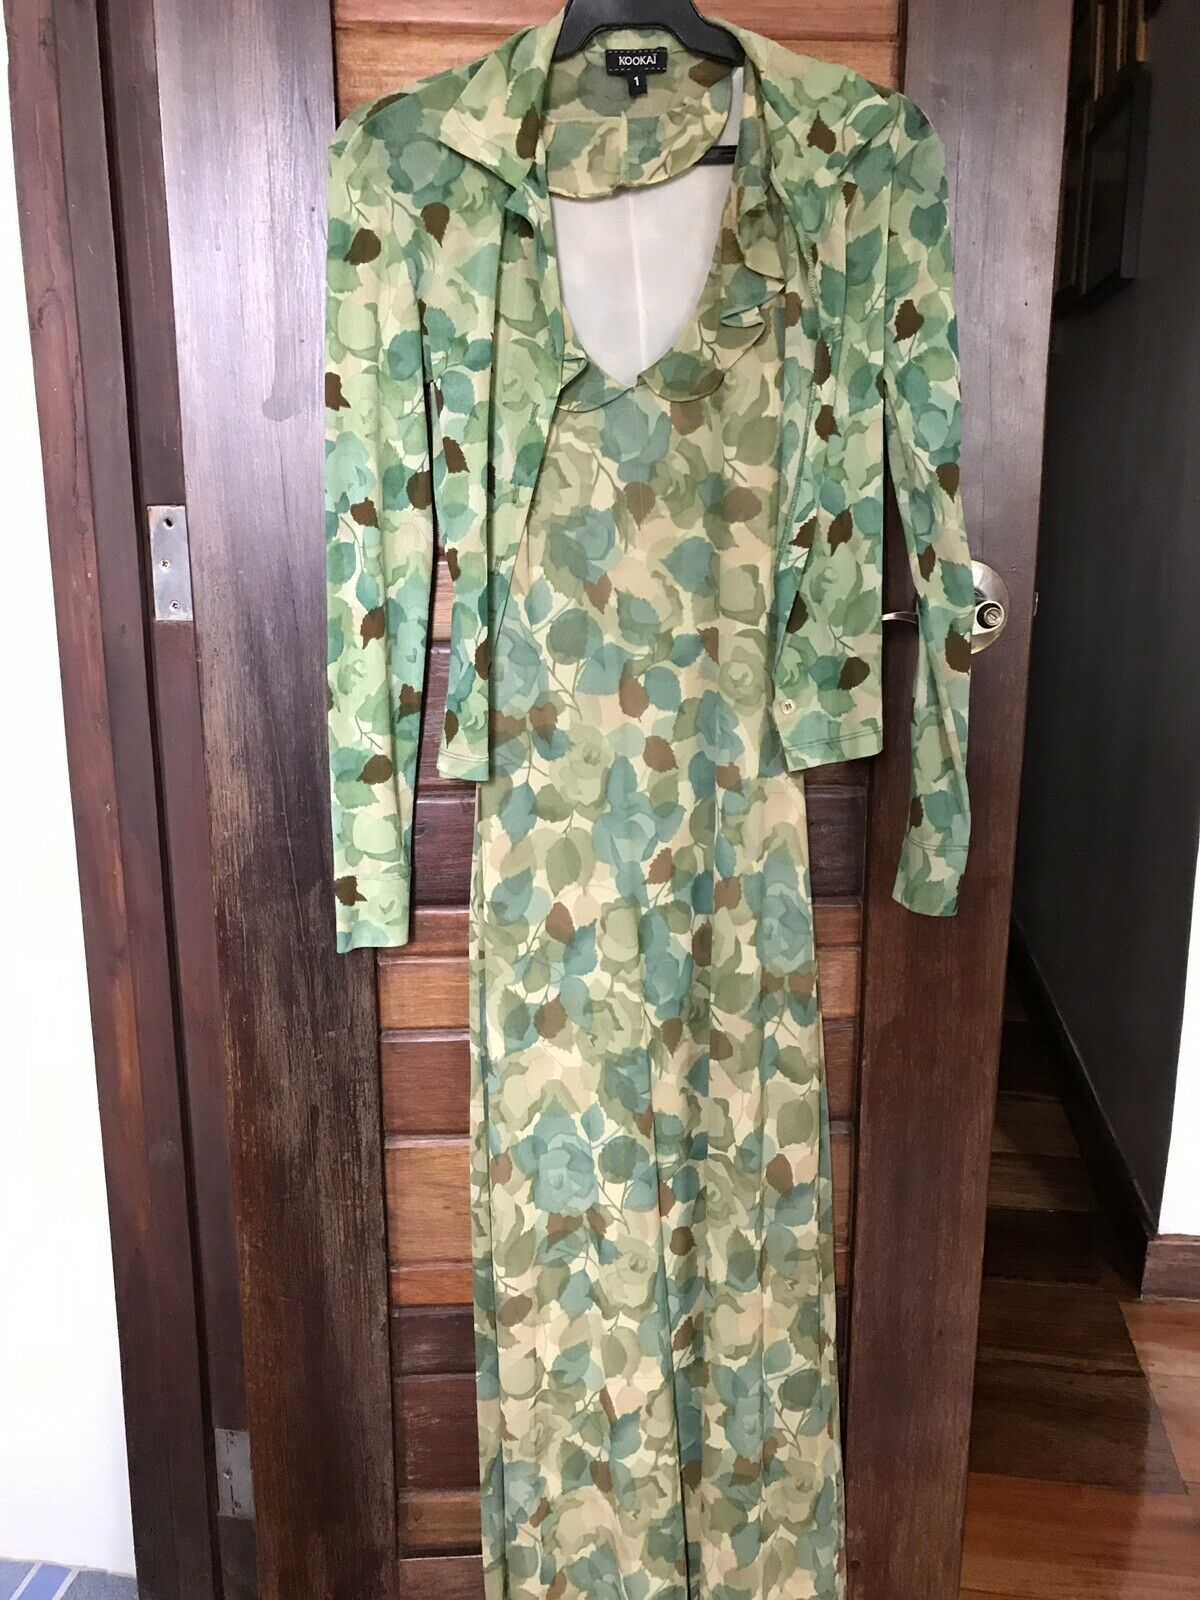 KOOKAI Vintage Dress W/ Cardigan Size 1